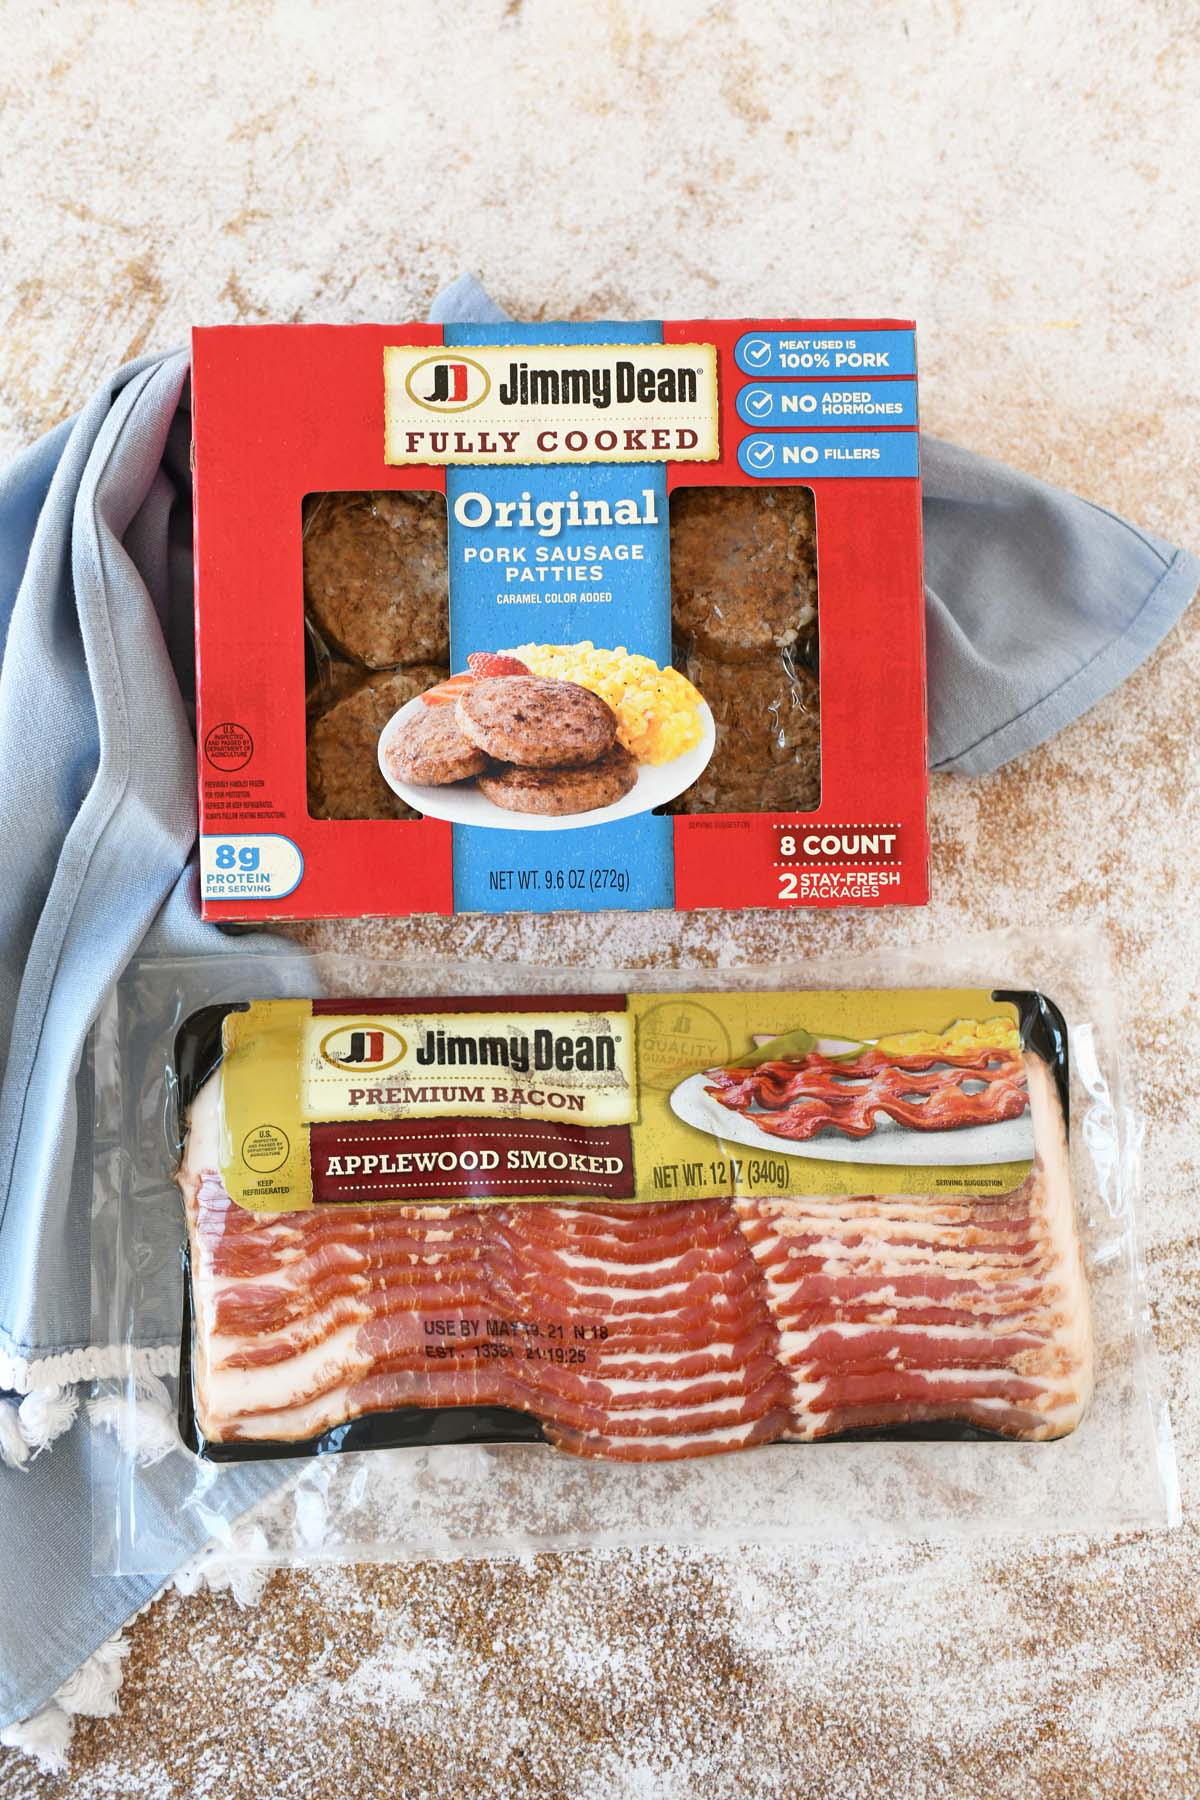 Jimmy Dean Bacon and Sausage packages on a wooden table with a blue napkin.